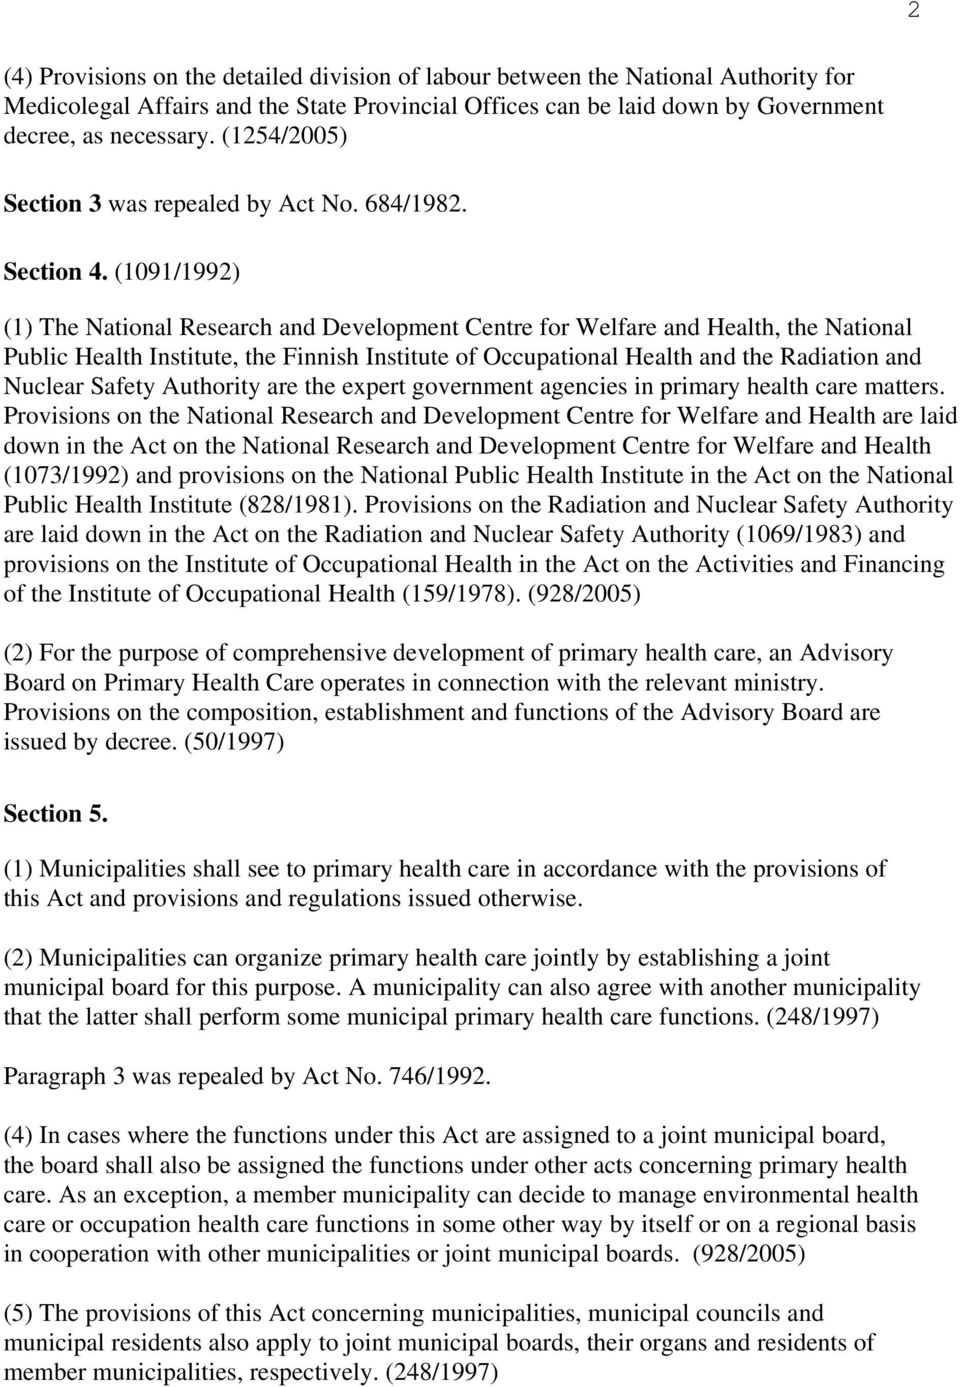 (1091/1992) (1) The National Research and Development Centre for Welfare and Health, the National Public Health Institute, the Finnish Institute of Occupational Health and the Radiation and Nuclear